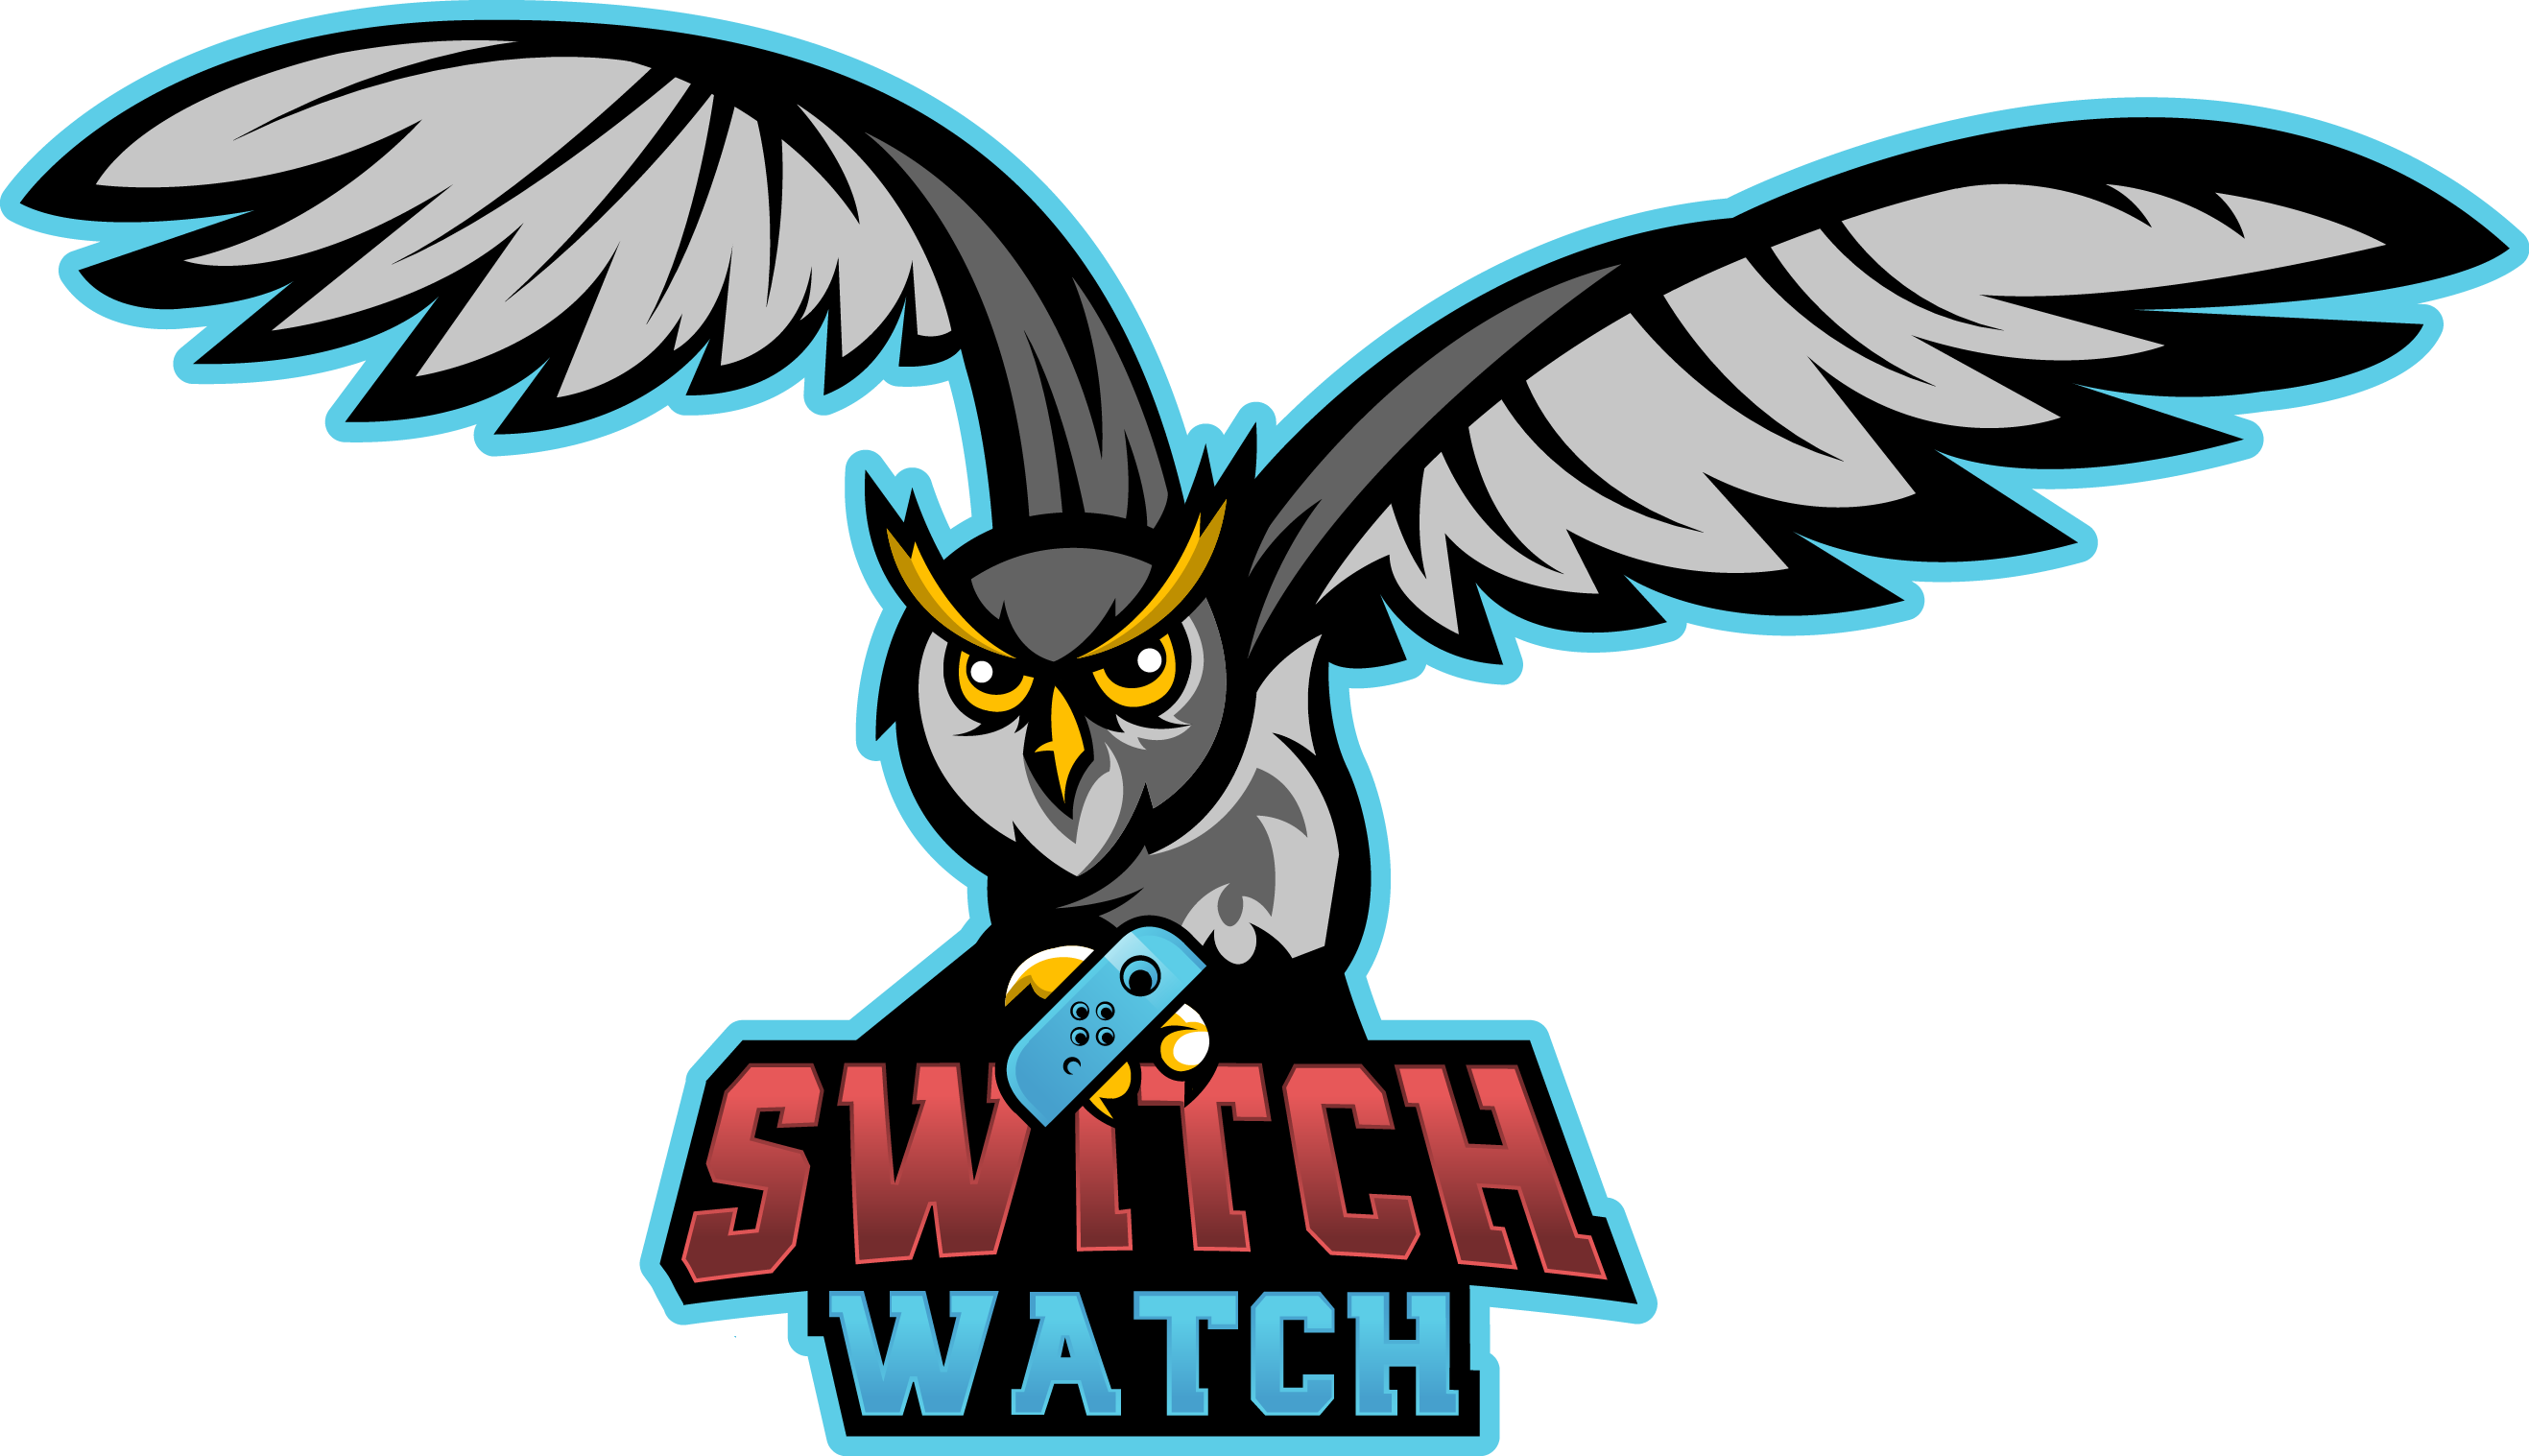 SwitchWatch